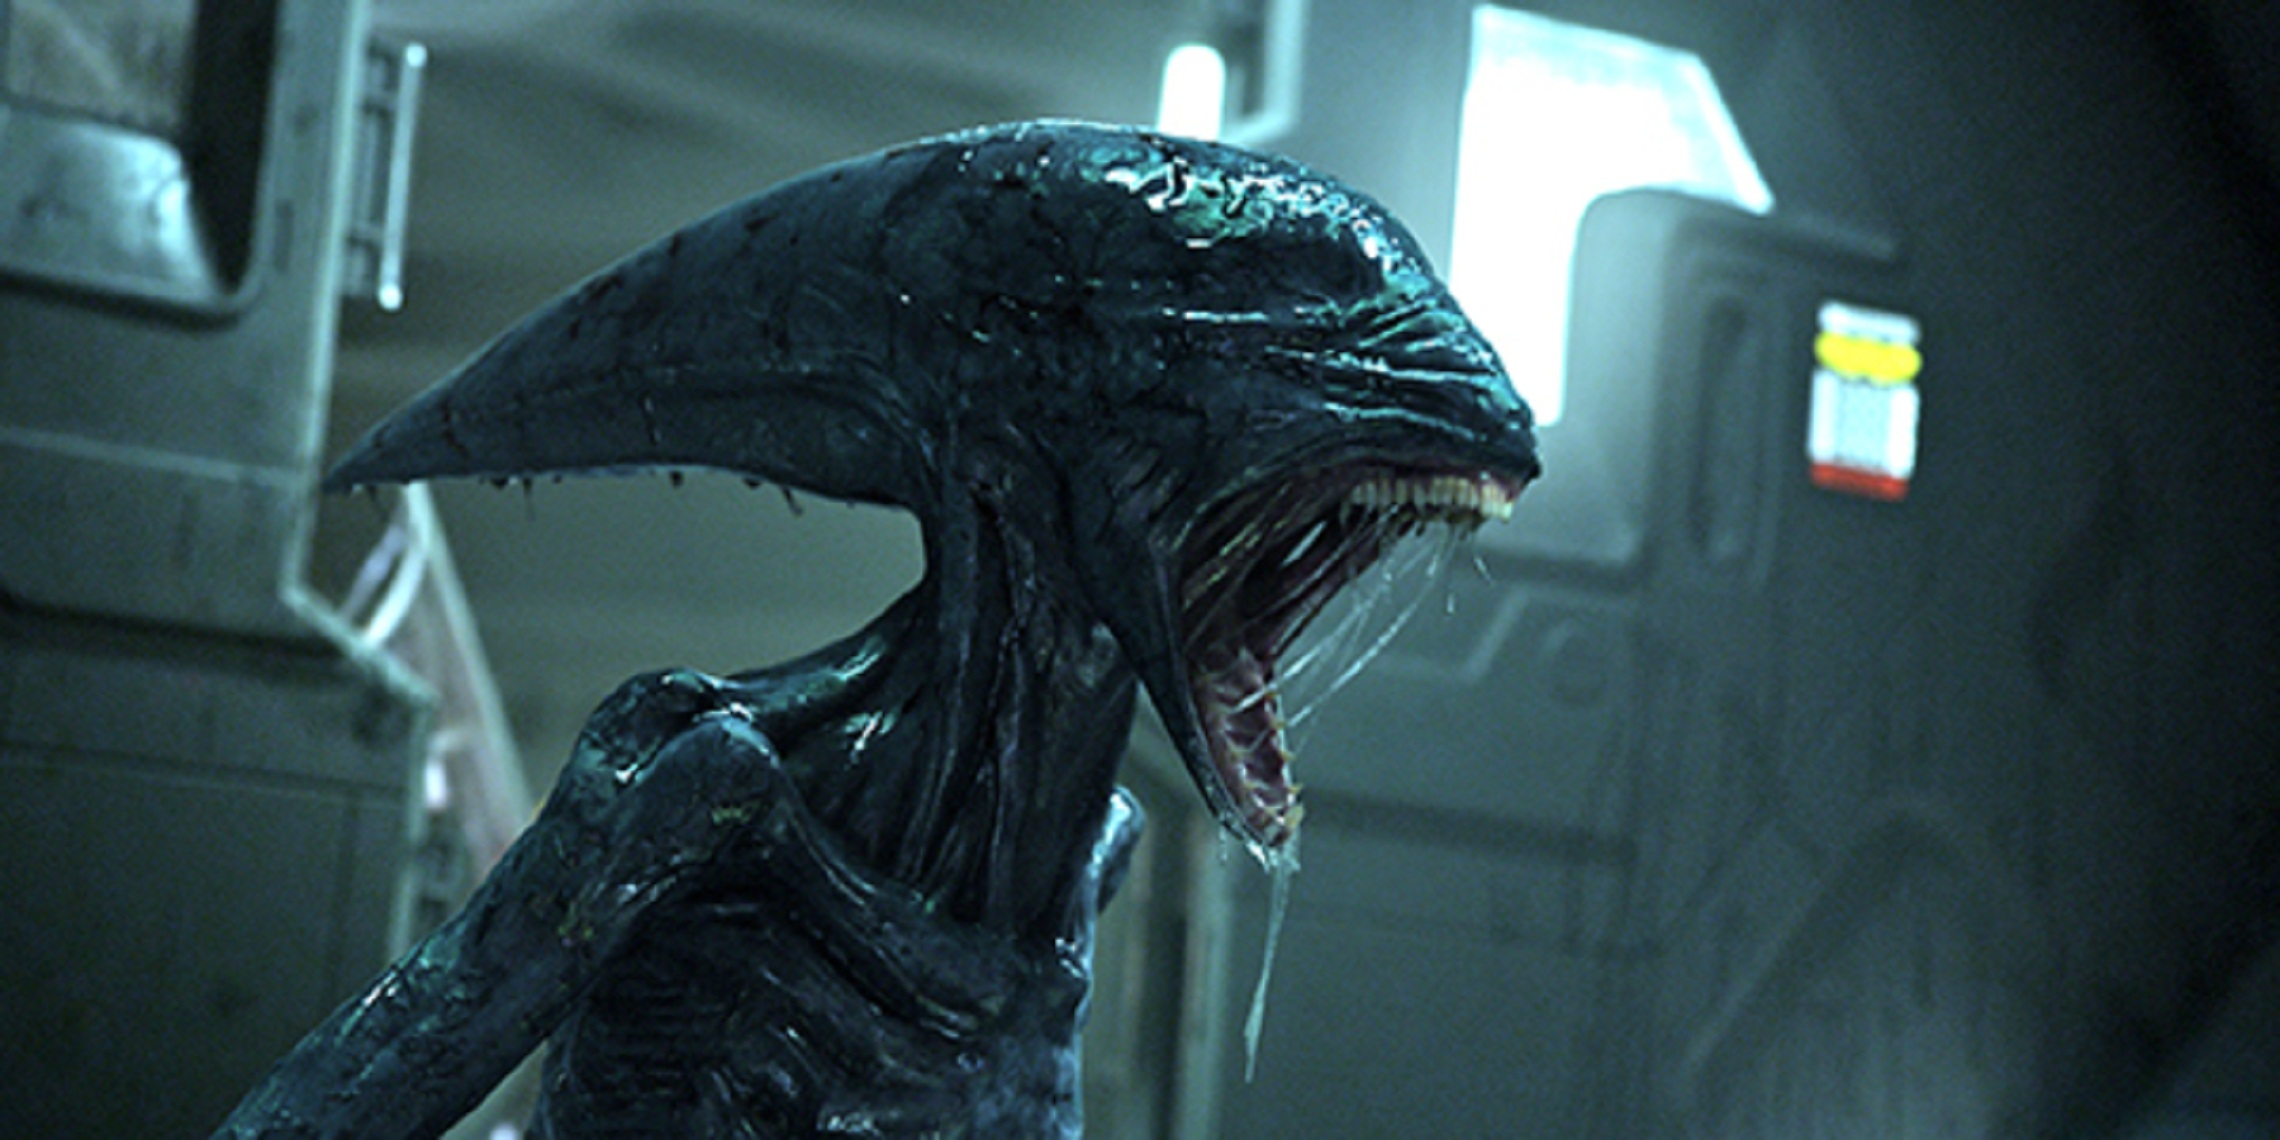 Alien: Covenant: The Engineers Still Have a Part to Play ... on transformers home planet, luke skywalker's home planet, yoda's home planet, alien home planet, superman's home planet, krypton superman home planet, chewbacca's home planet, predator home planet,